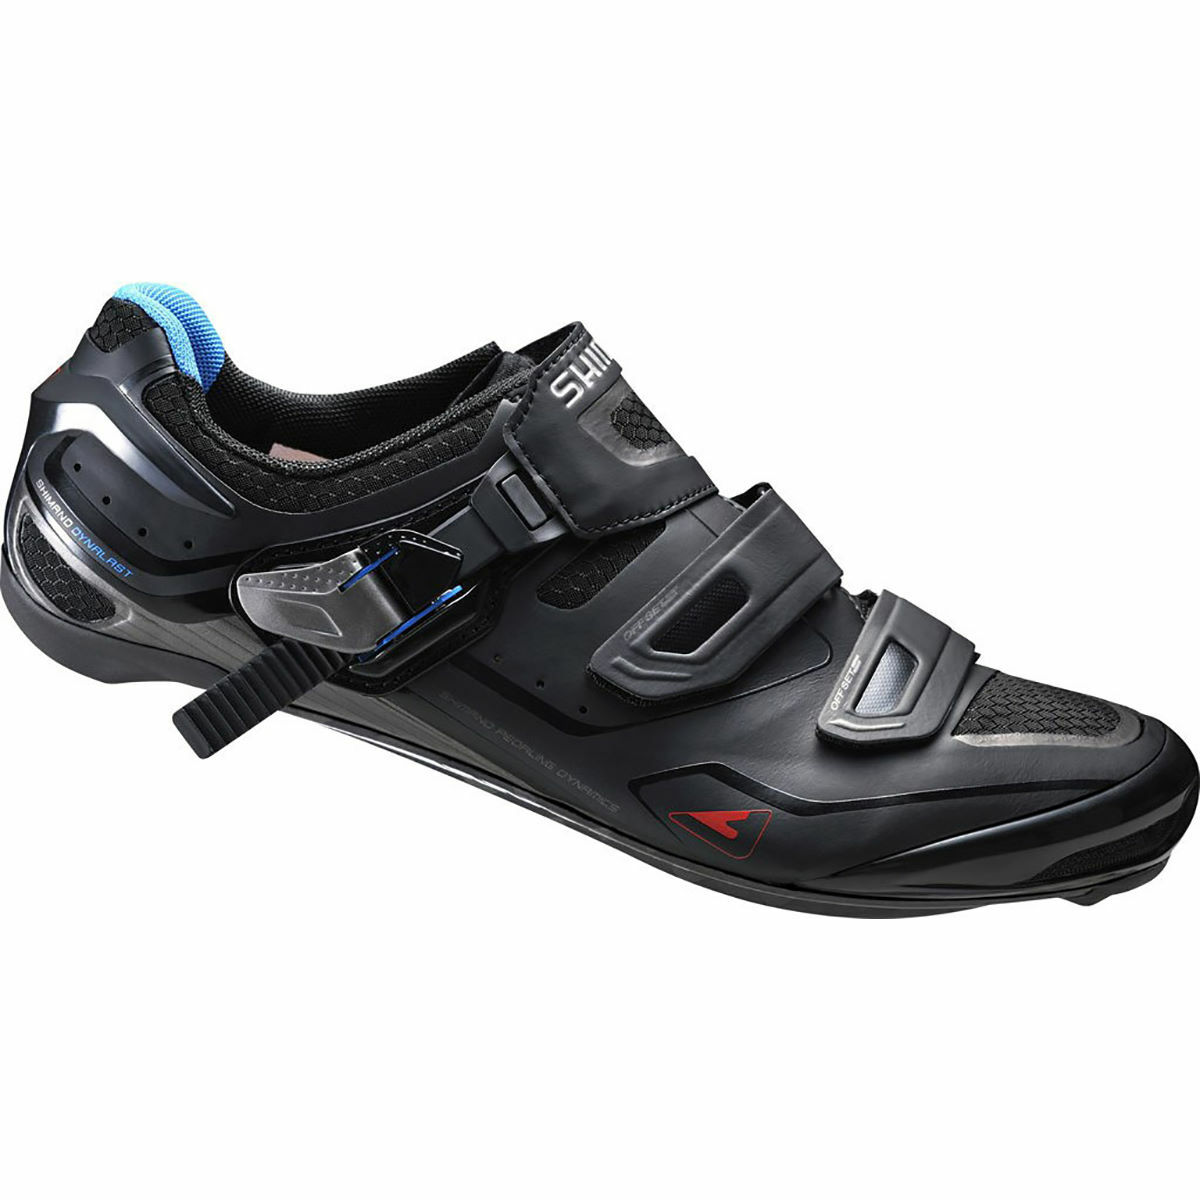 Shimano Shimano R260 SPD-SL Road Shoes - Clearance Size 36 only (Black or White)